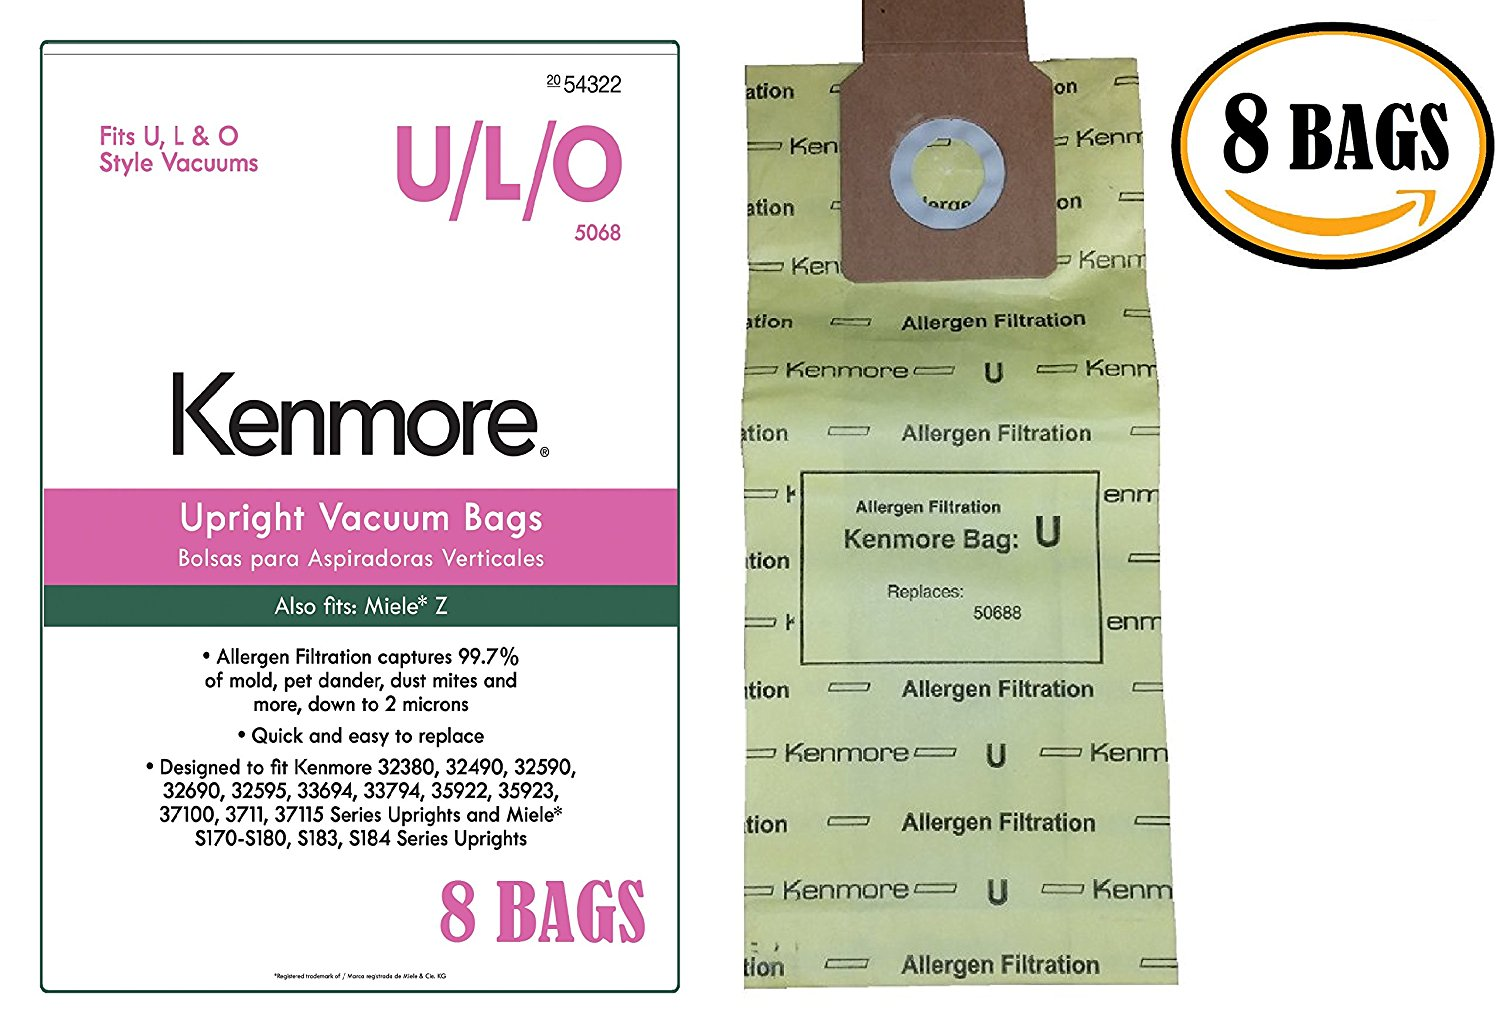 Kenmore 50105 8 Pack Upright Vacuum Bags For U//L//O Style Vacuums 2054322